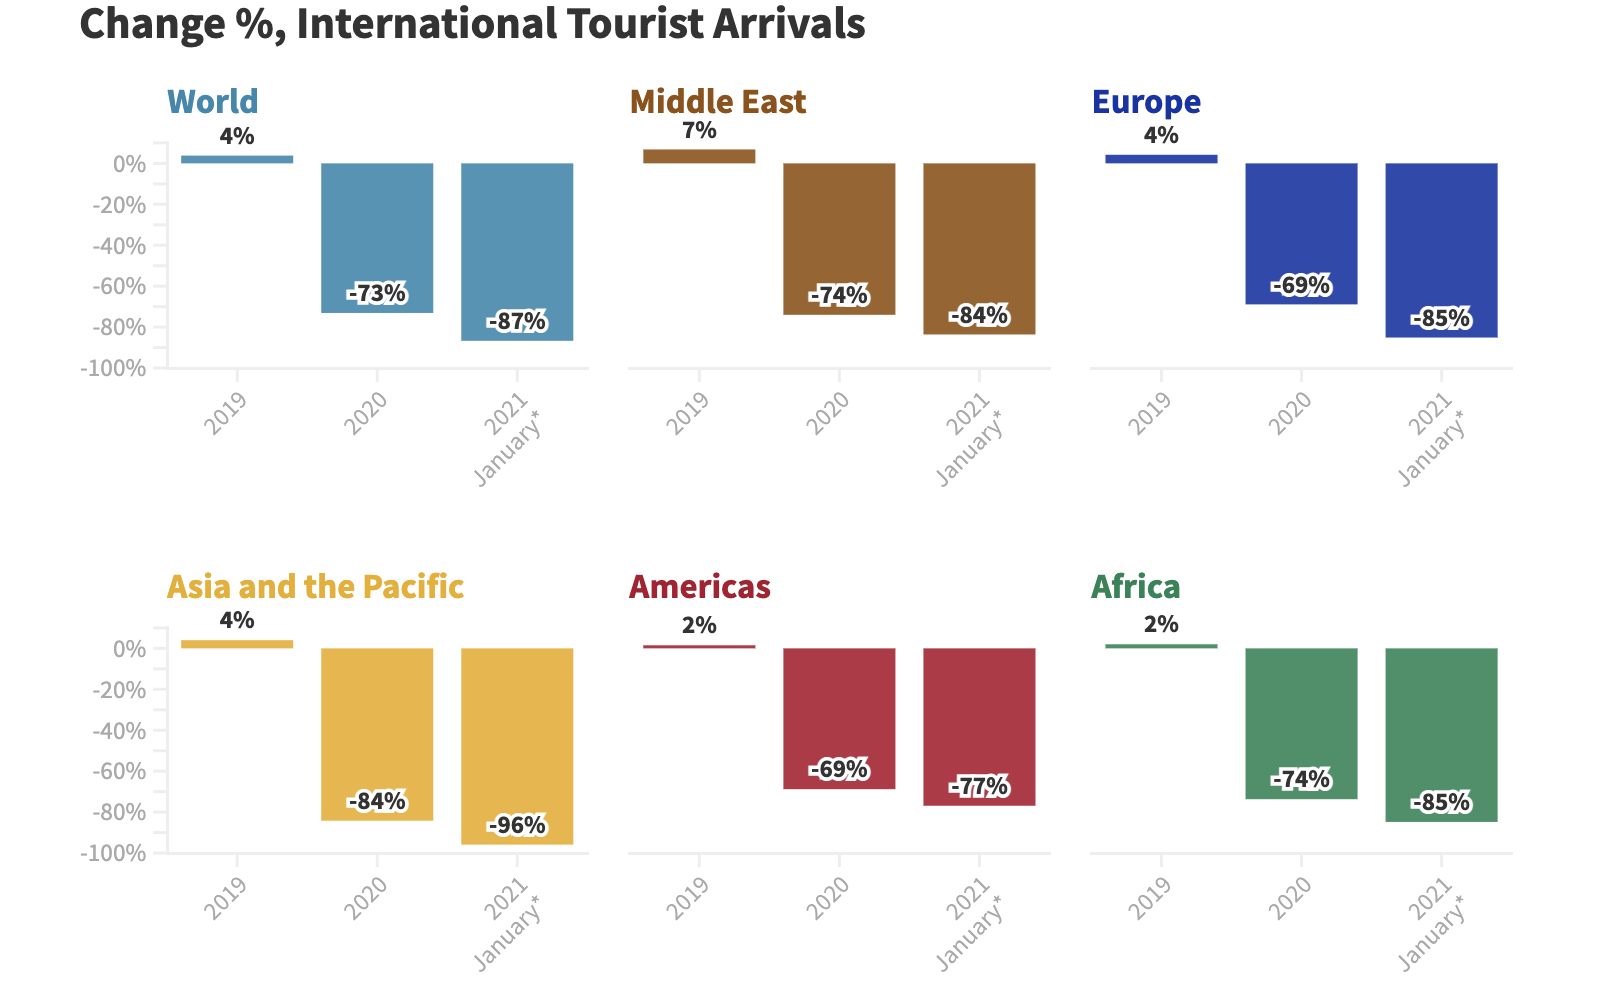 Source: World Tourism Organization (UNWTO)